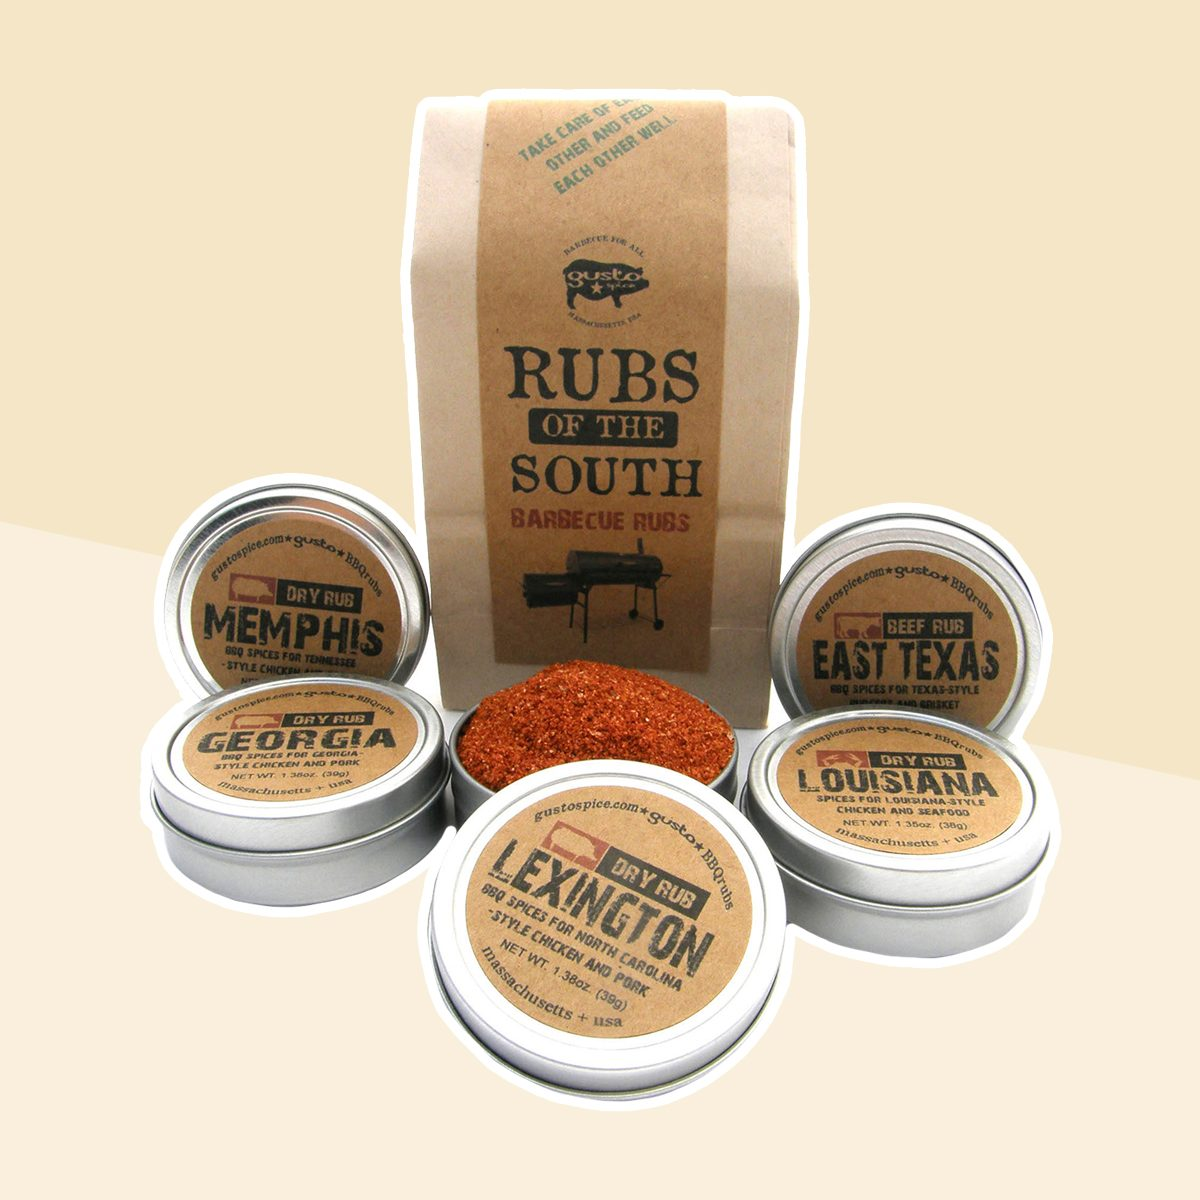 Gusto's RUBS of the SOUTH - Excellent Barbecue Sampler Gift Set - BBQ and Grilling Spices and Rubs